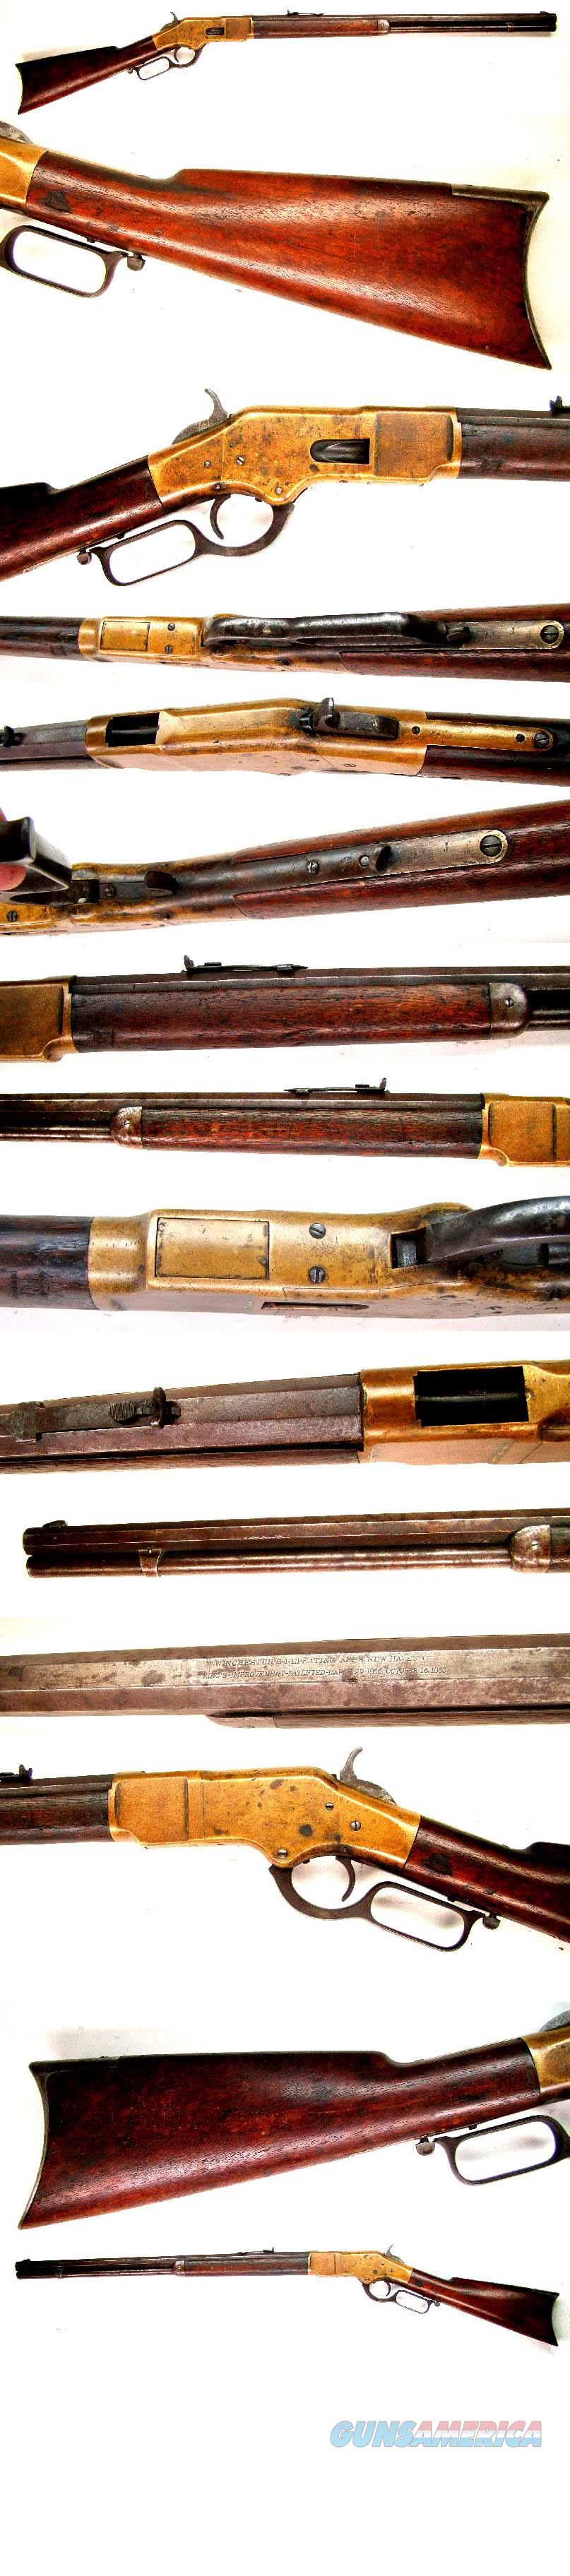 Winchester Model 1866 Rifle  Guns > Rifles > Winchester Rifles - Pre-1899 Lever